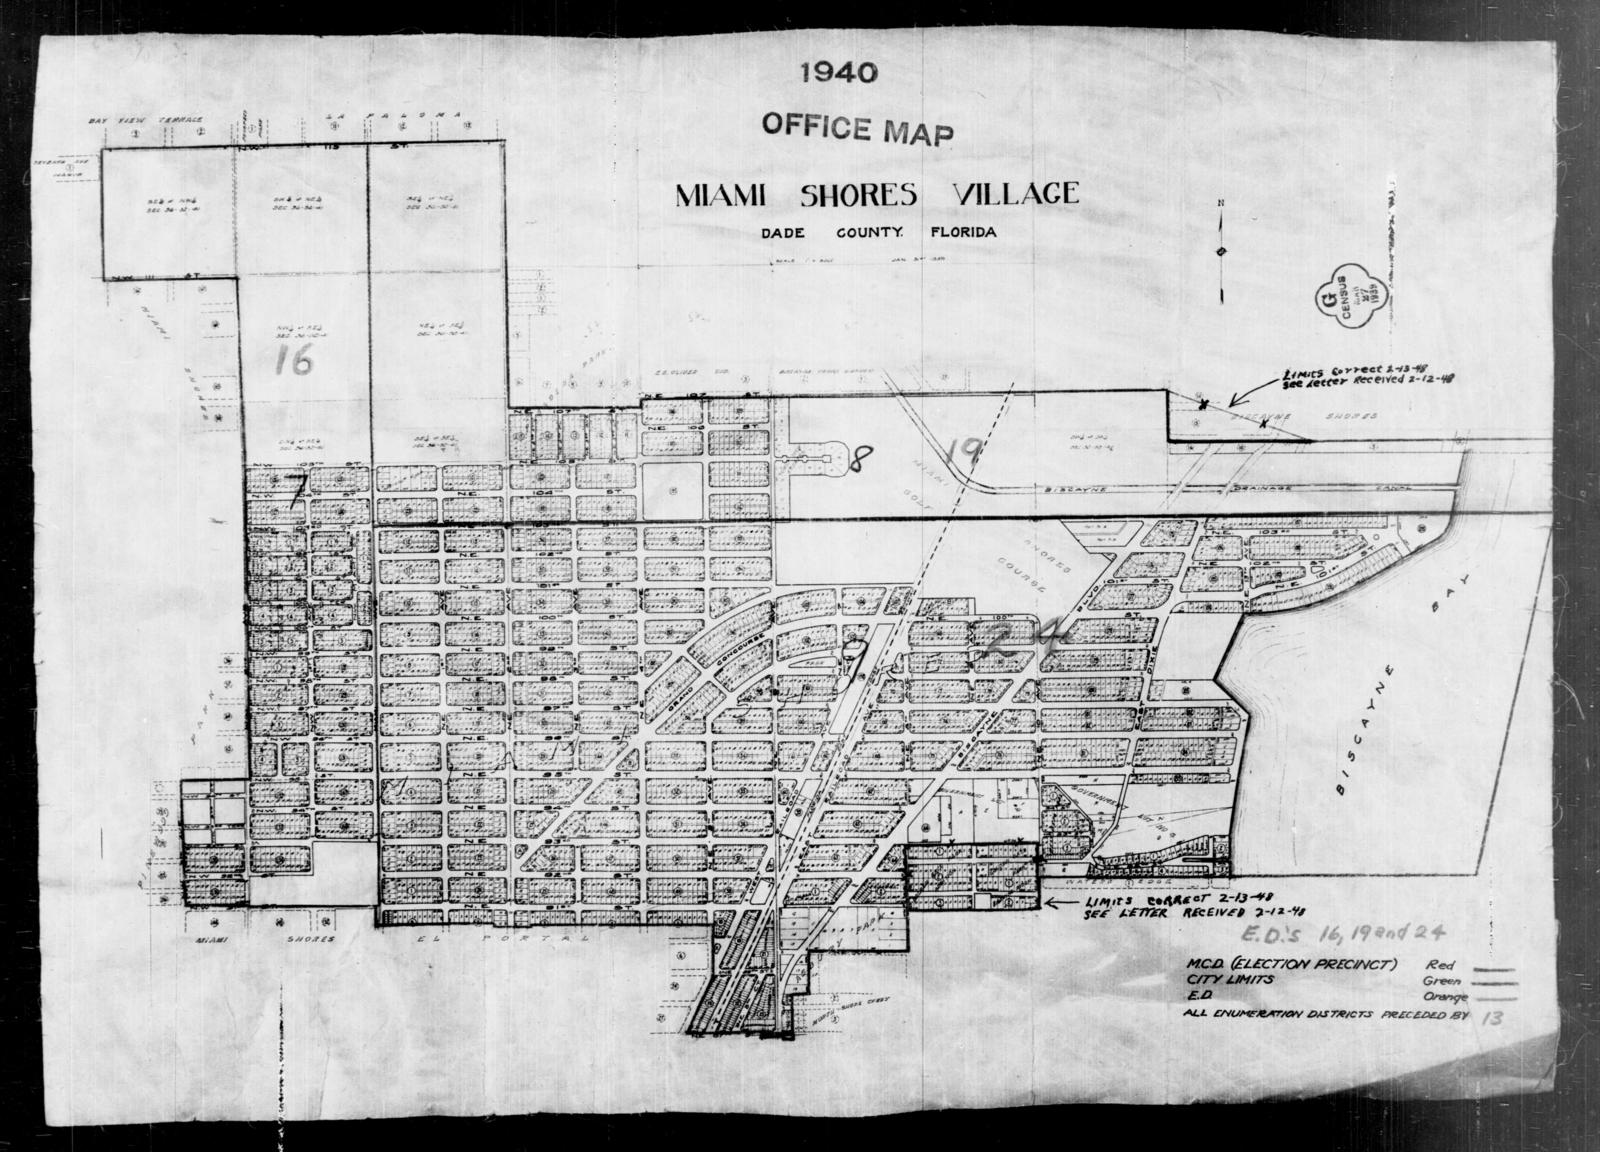 Us 19 Florida Map.1940 Census Enumeration District Maps Florida Dade County